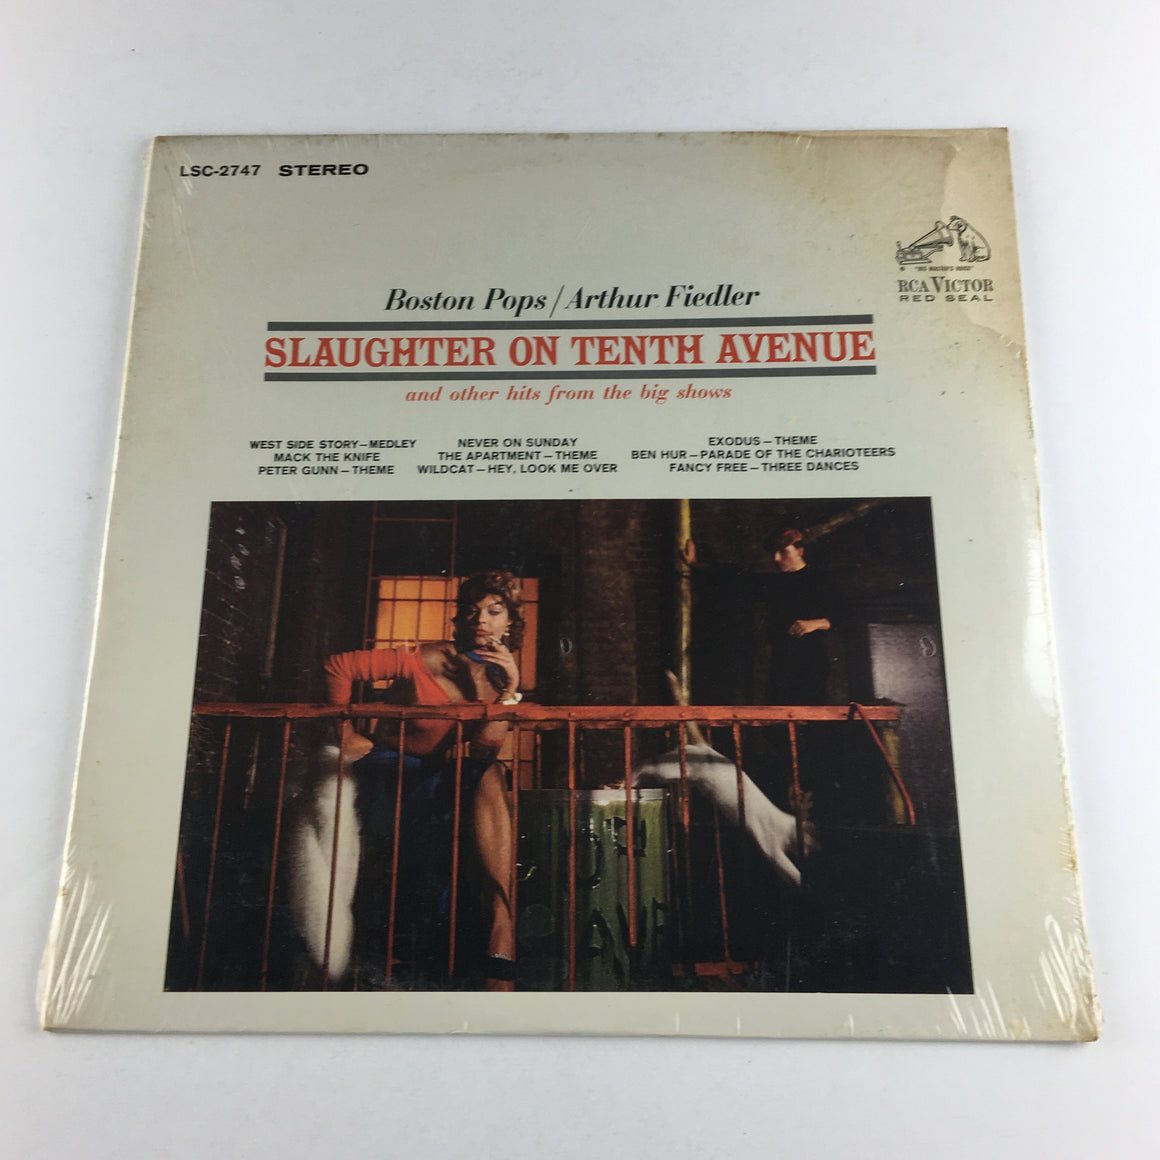 Arthur Fiedler Slaughter On Tenth Avenue Used Vinyl LP NM\VG+ LSC-2747